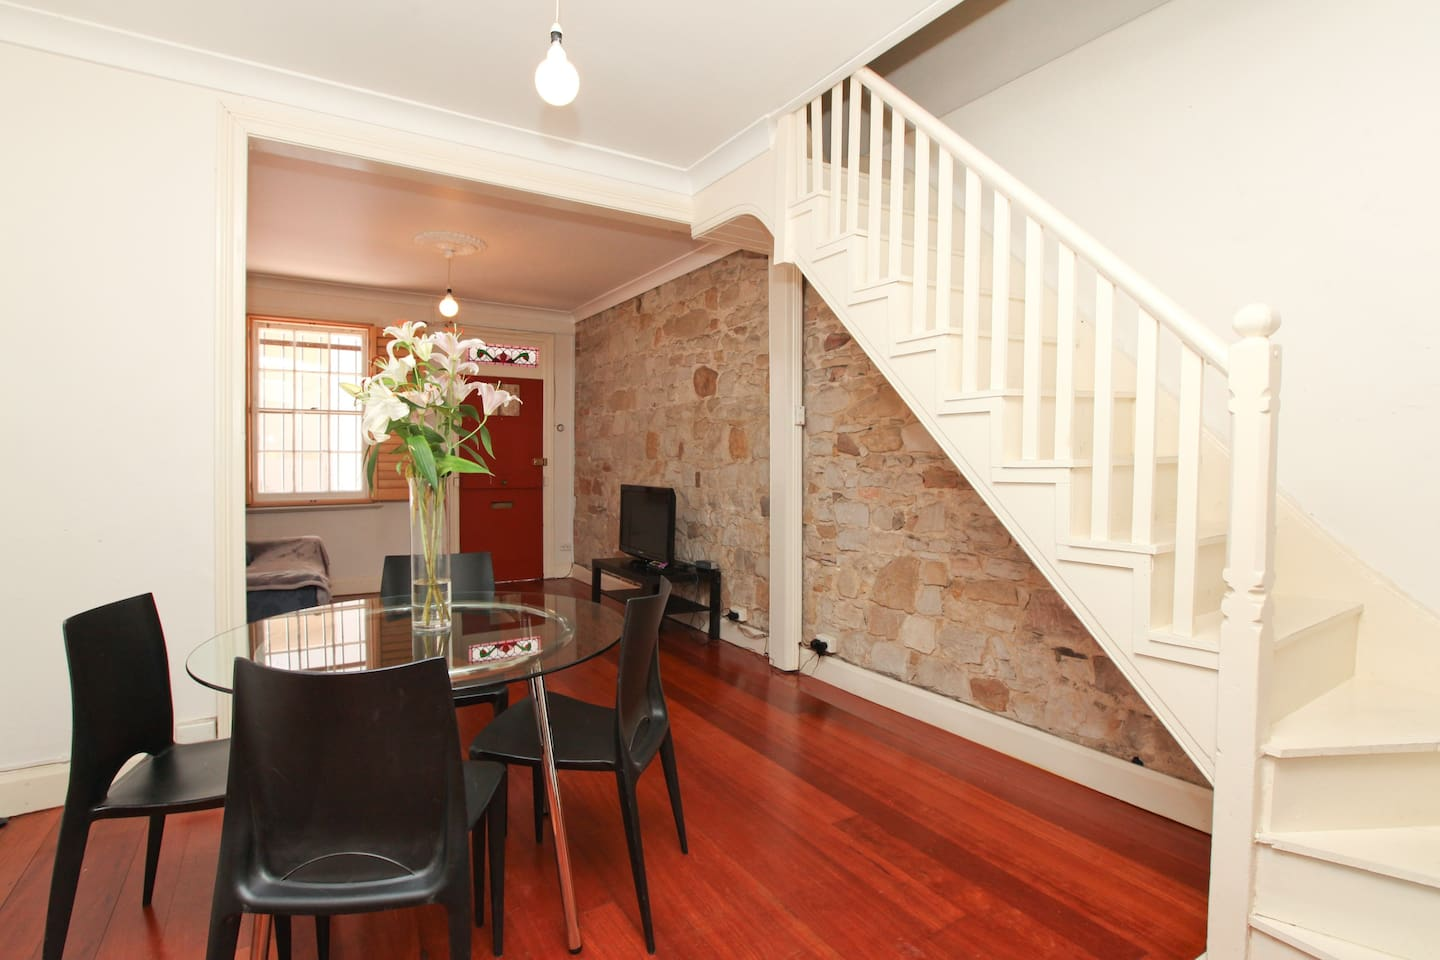 2 storey, king size bed or 2 x single beds upstairs plus sofa bed downstairs. Heritage sandstone, wooden floors, separate dining, kitchen & bathroom.